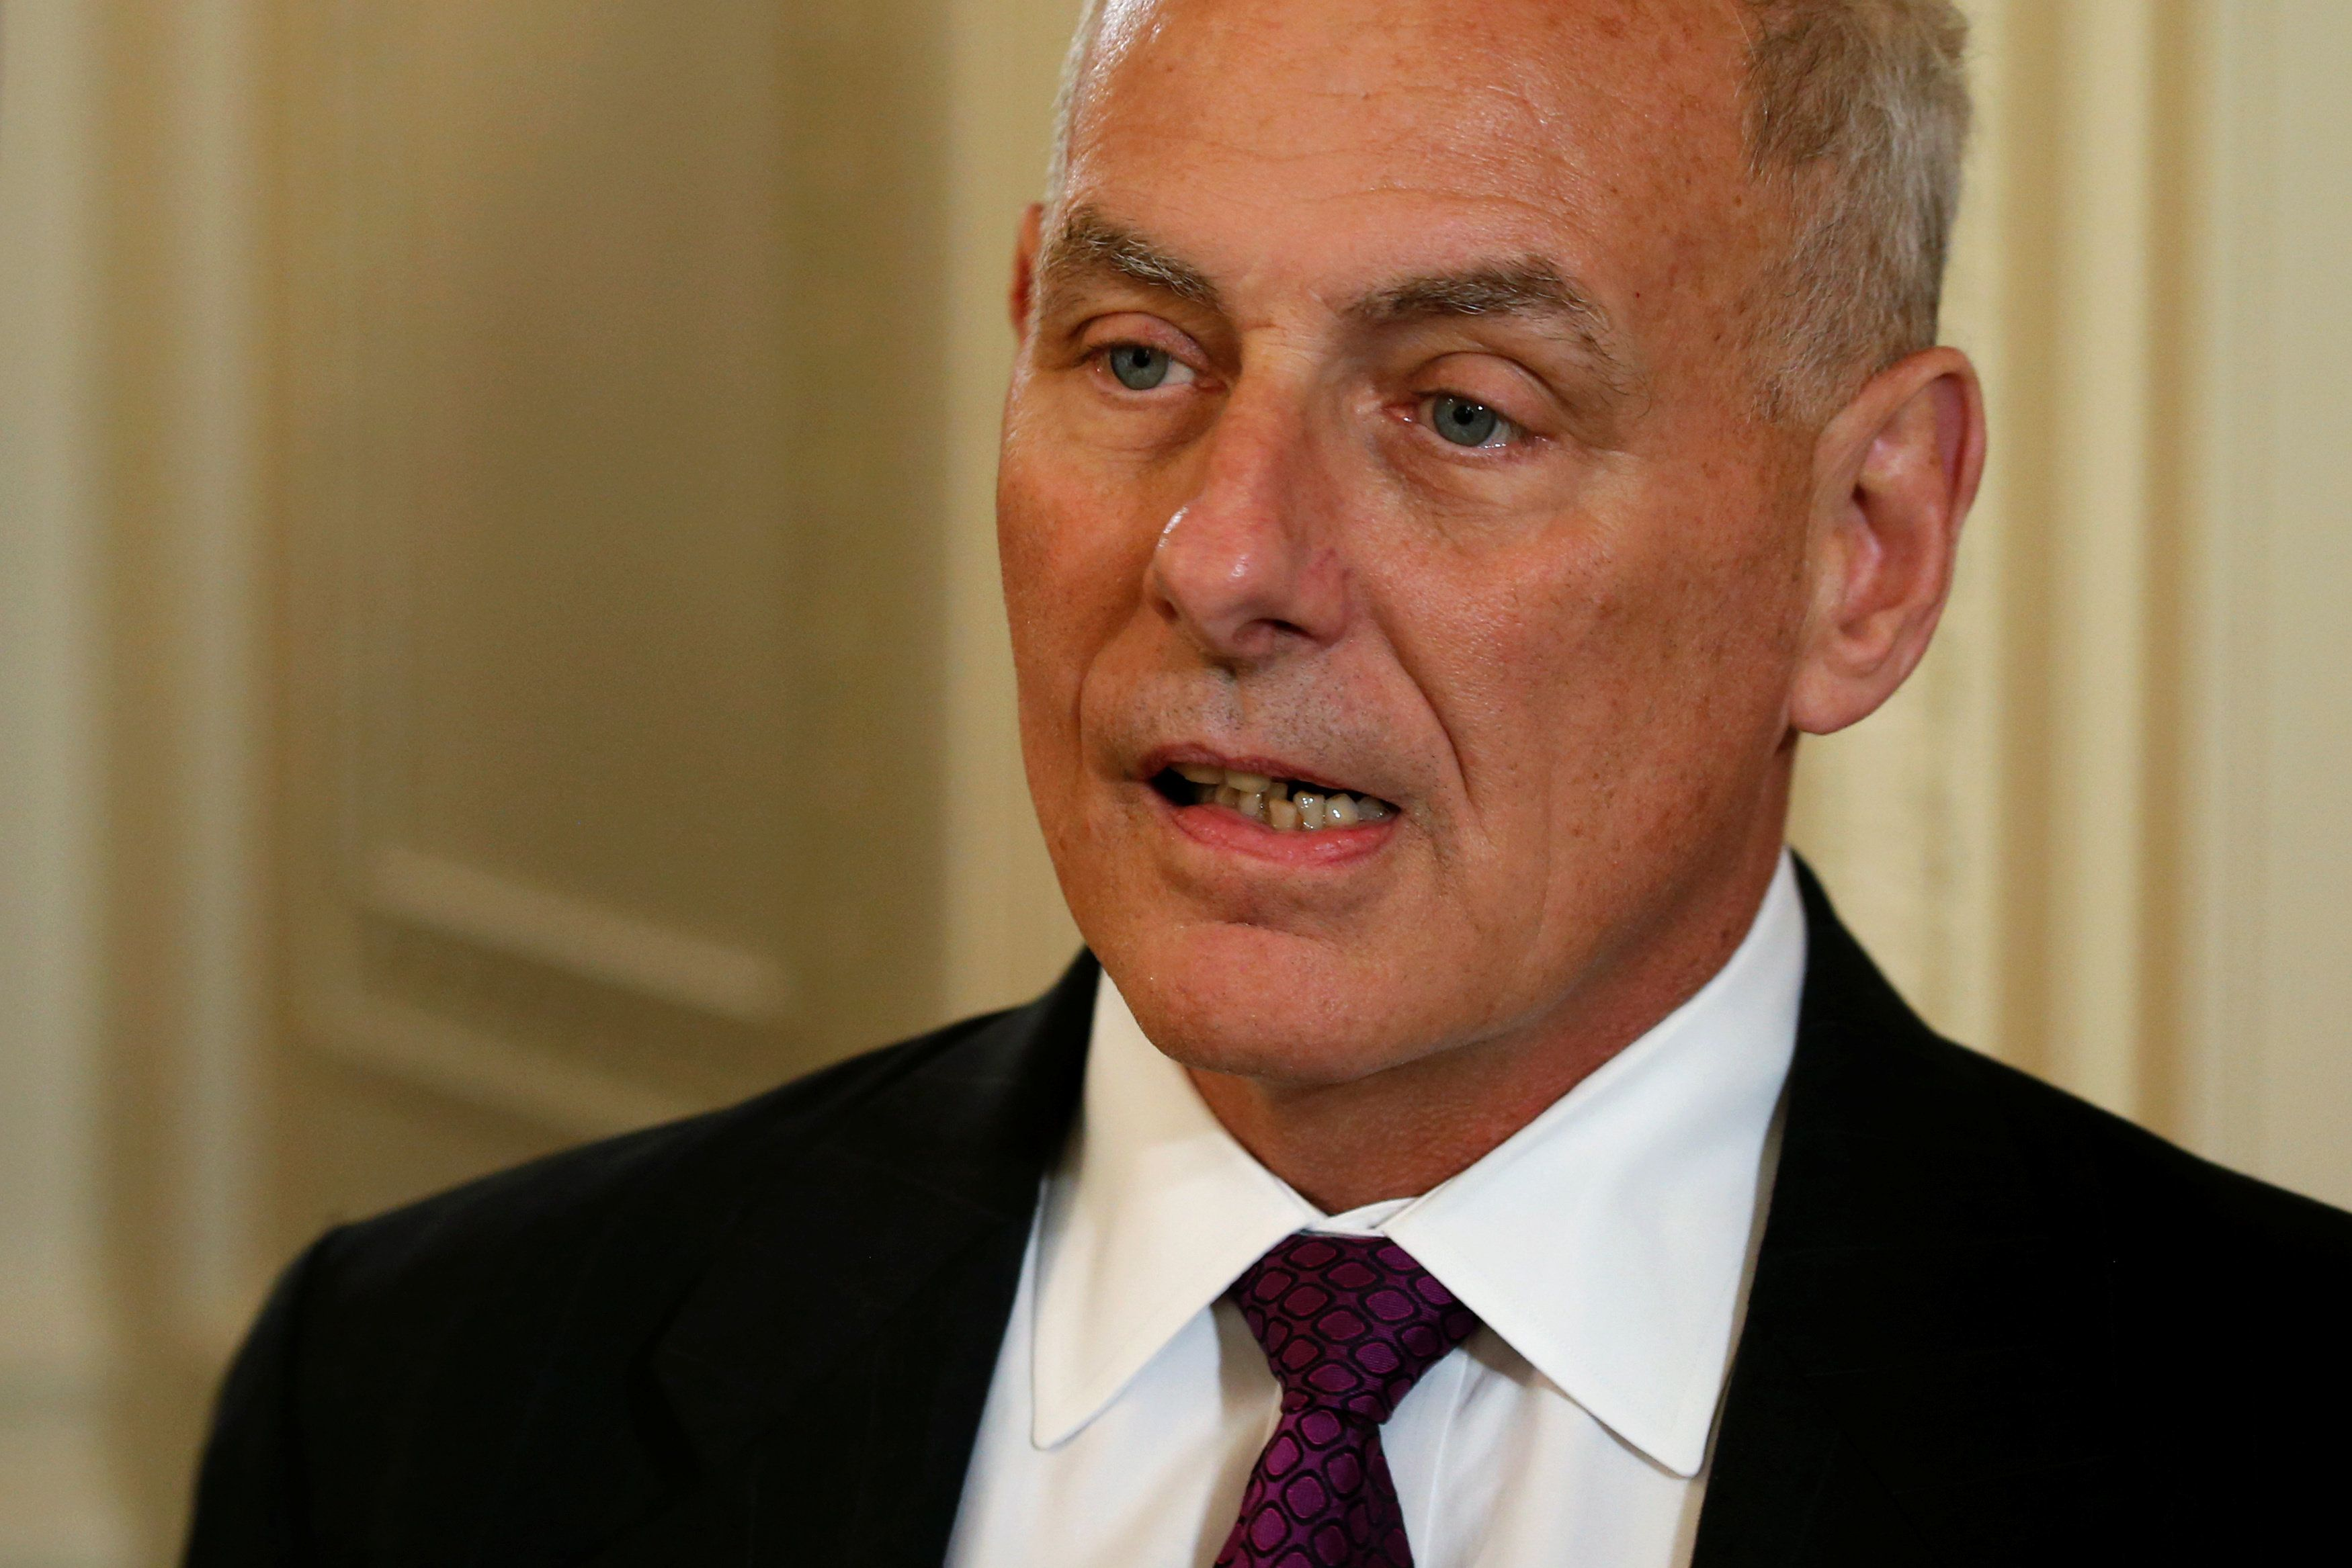 John Kelly, above, replaced Reince Priebus as chief of staff in July 2017.